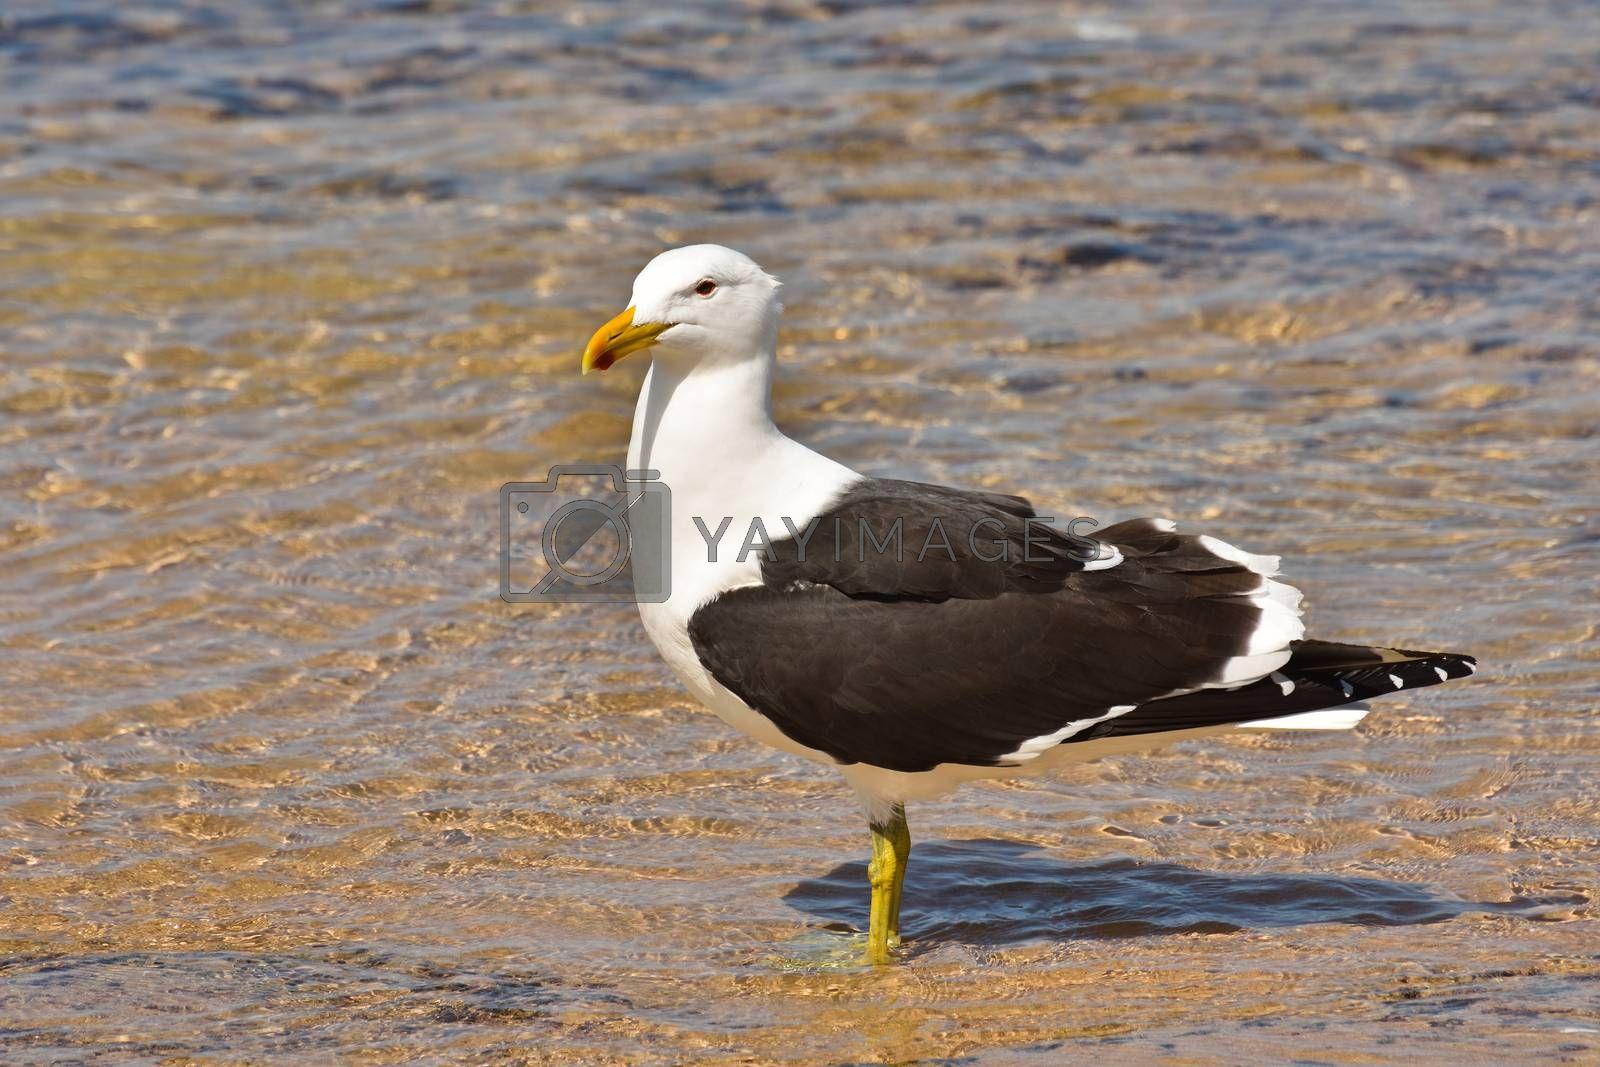 A lesser black-backed gull seagull (Larus fuscus) standing in coastal sea water, Mossel Bay, South Africa